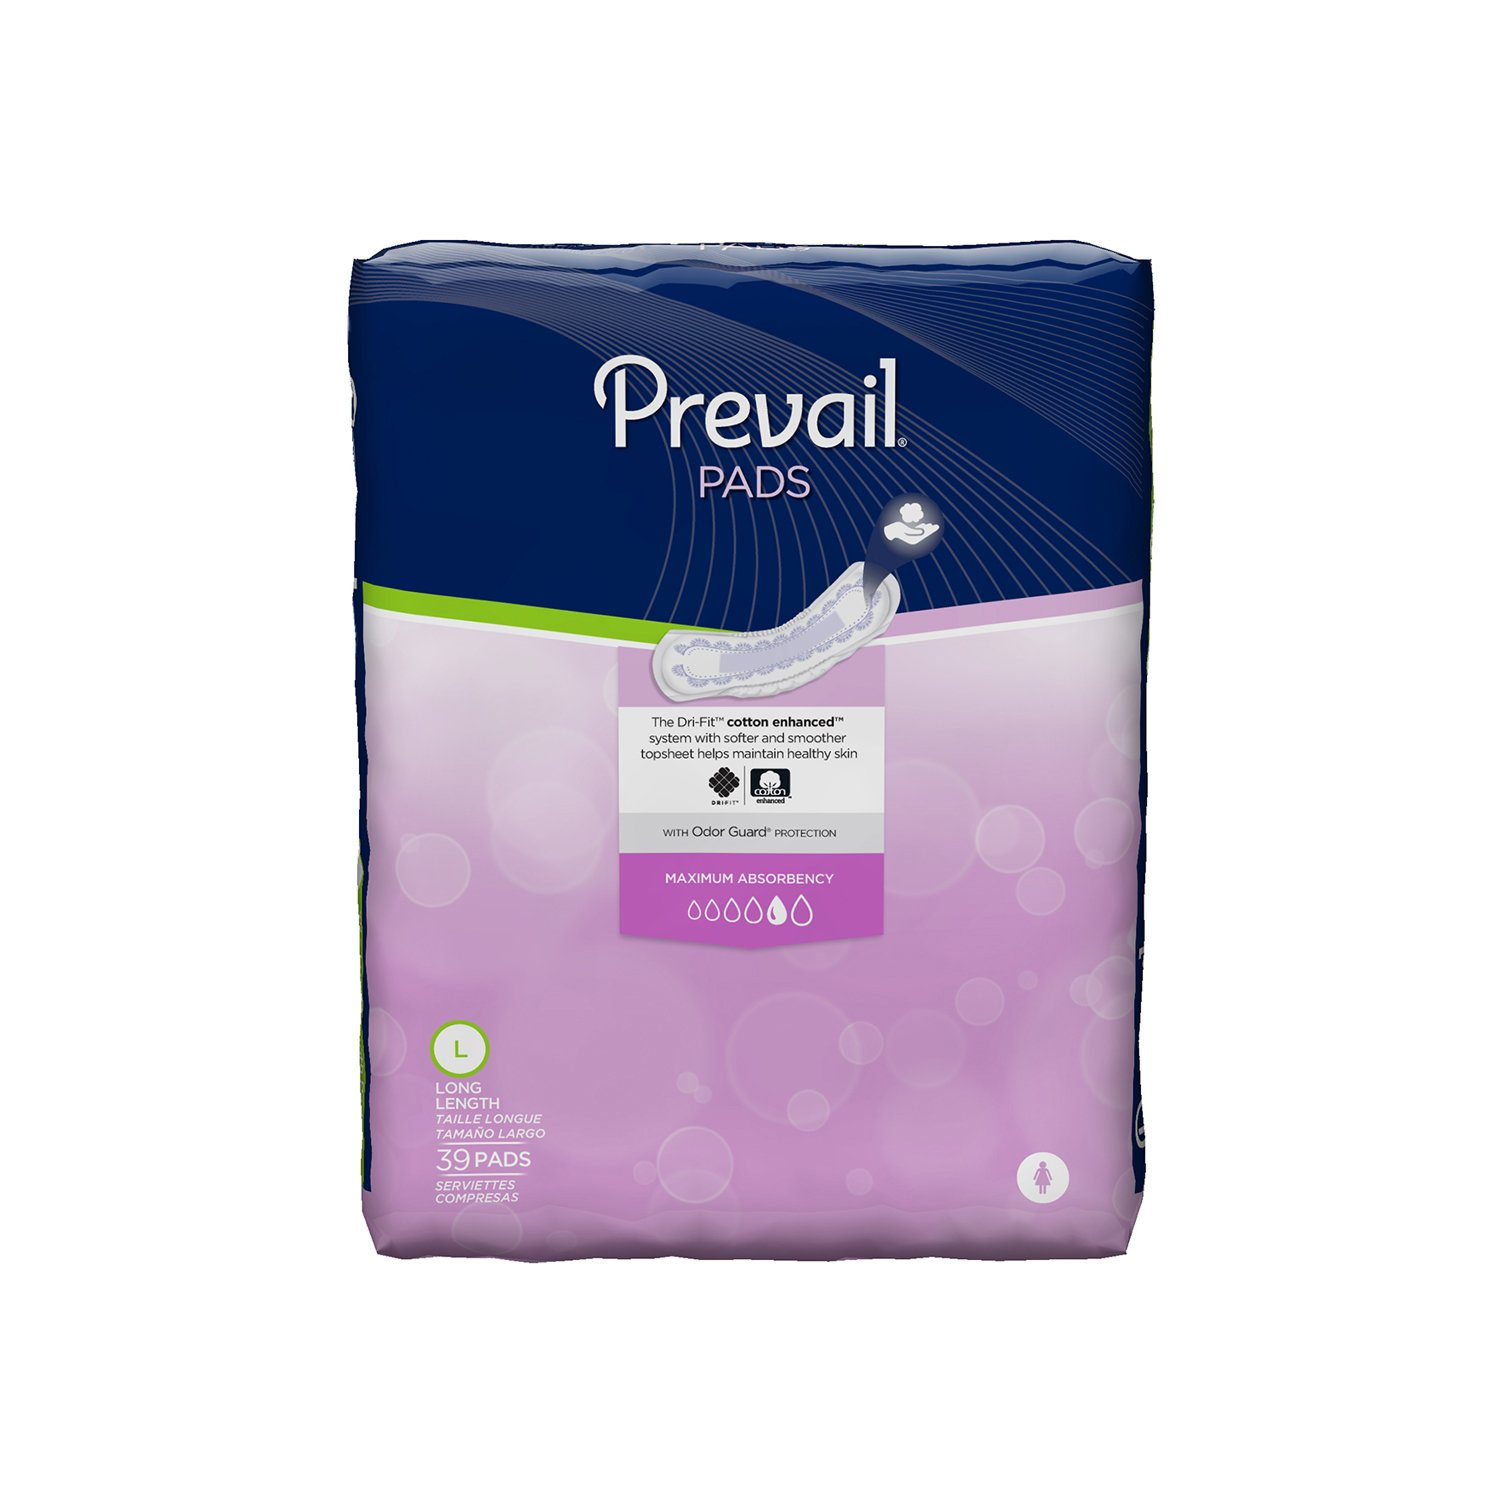 Prevail Maximum Absorbency Incontinence Bladder Control Pads Long 39 Count Rapid Absorption Discreet Comfort Fit Overnight